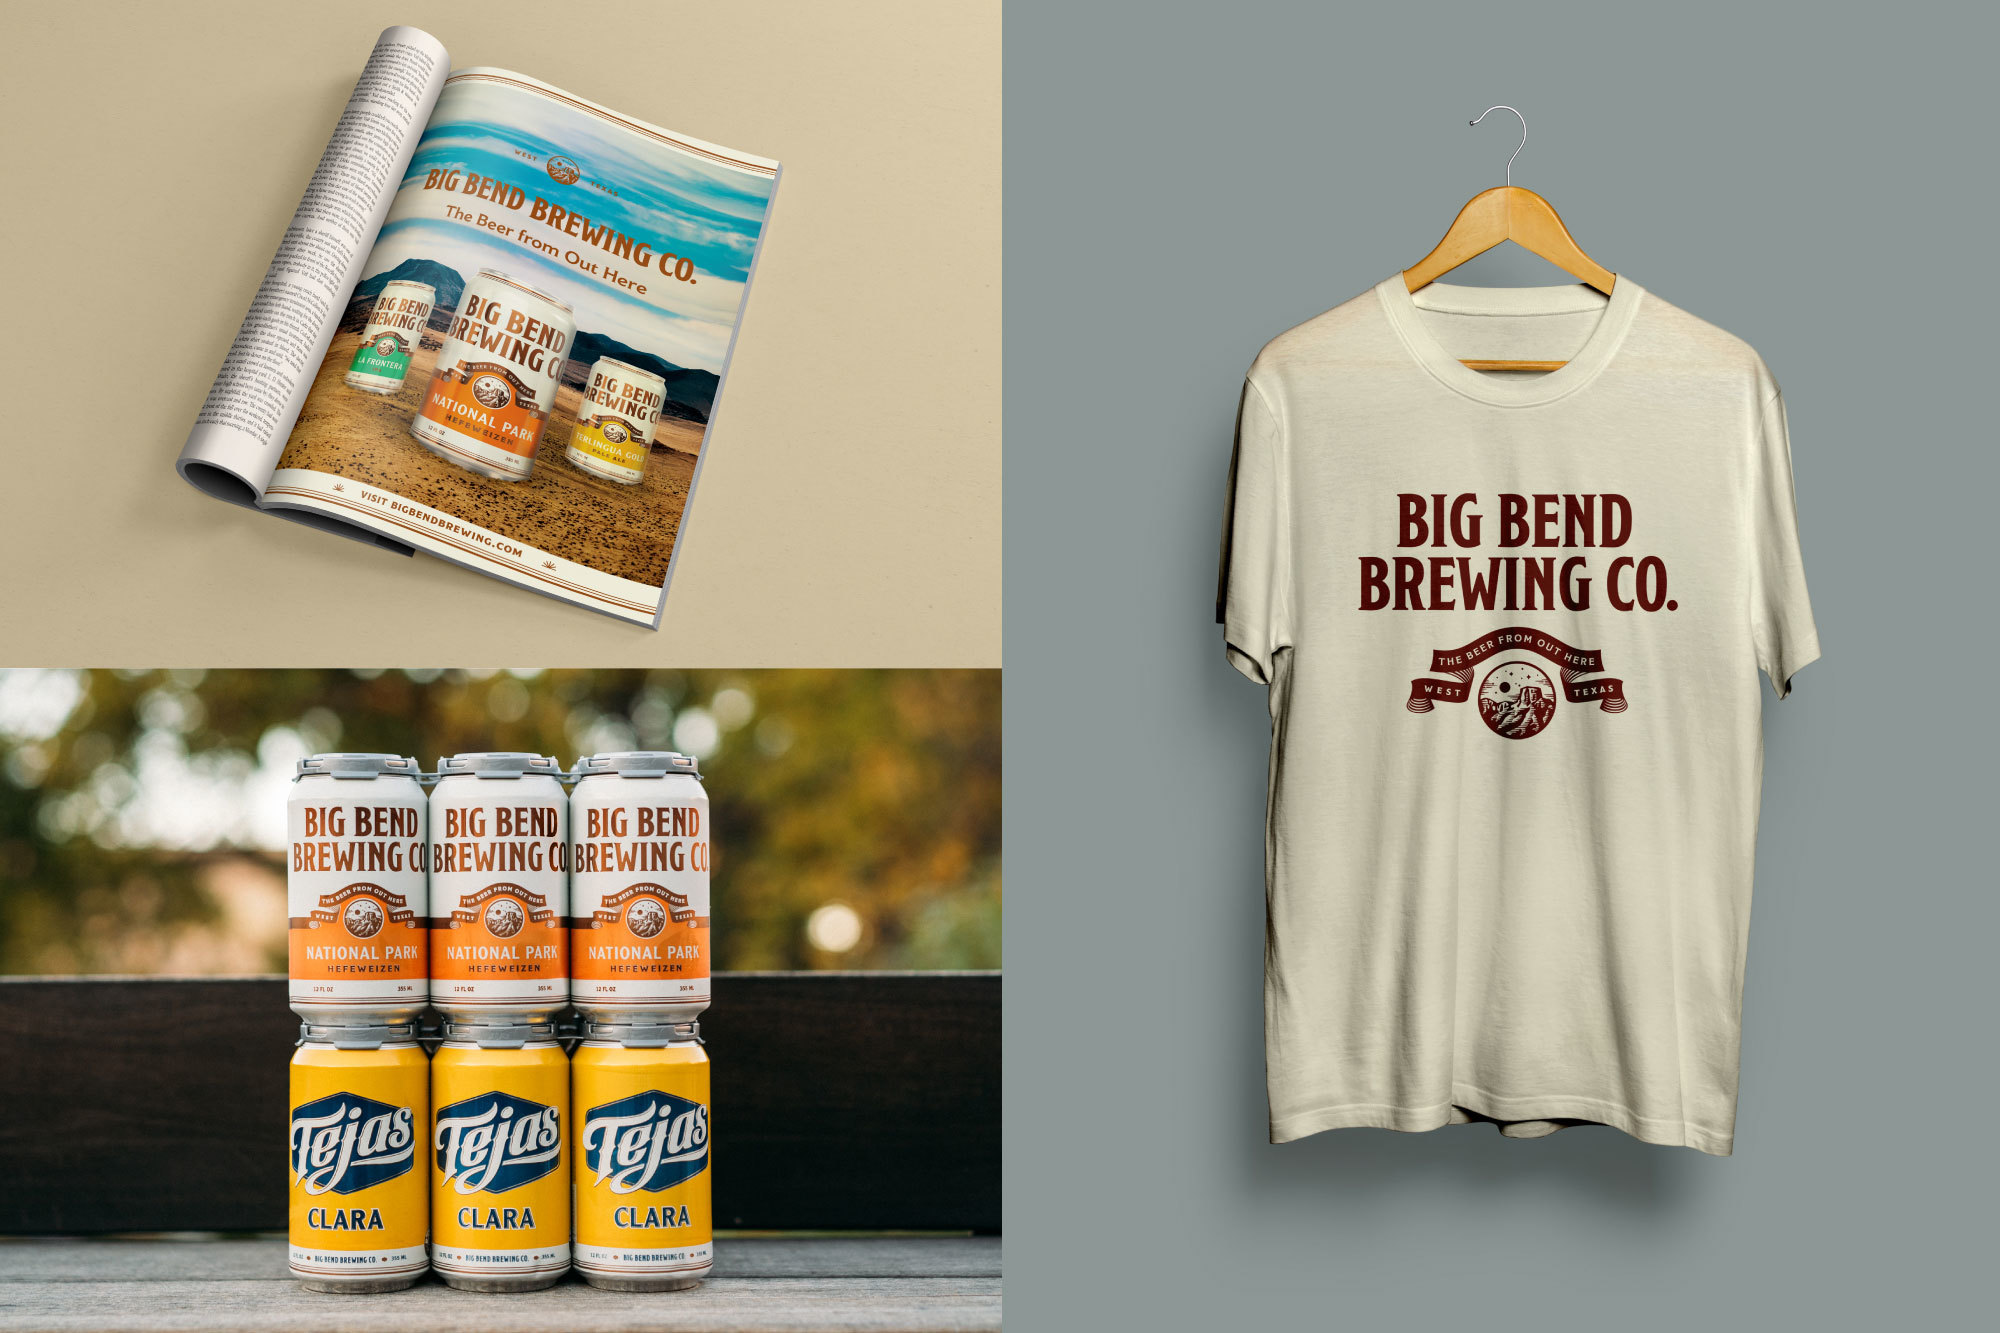 Bbbc Shirt Ad Cans